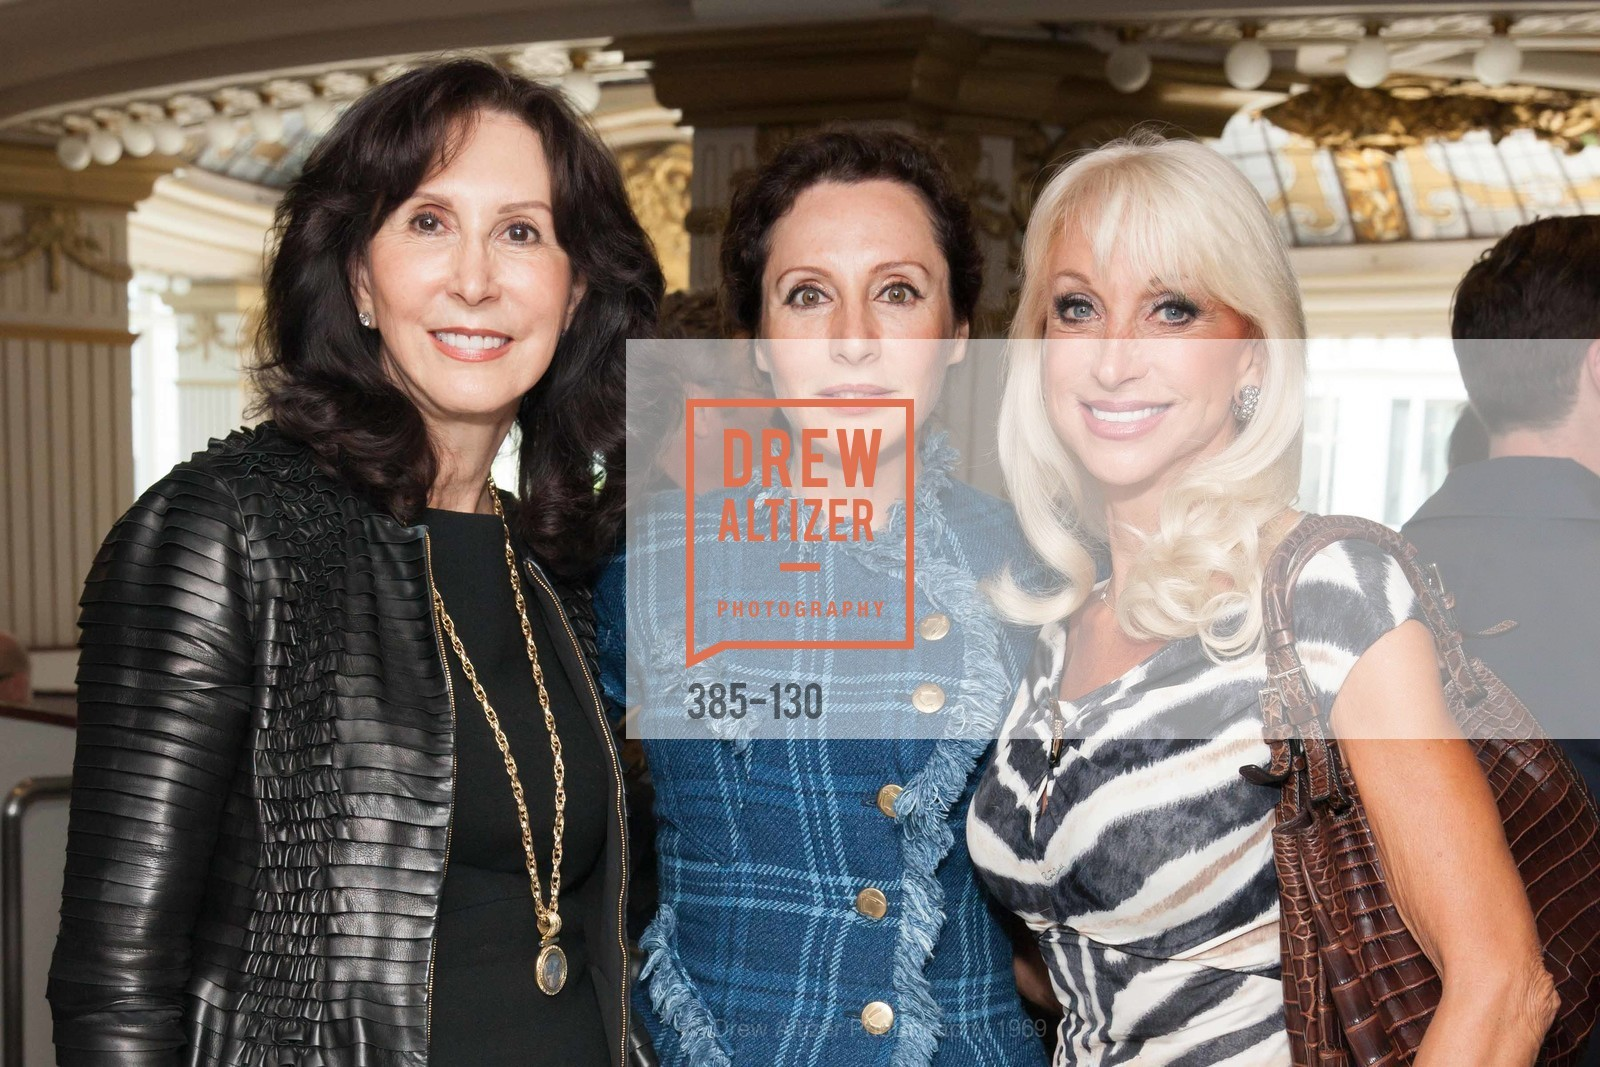 Carolyn Chandler, Clara Shayevich, Daru Kawalkowski, Electric Fashion Book Signing with Christine Suppes & Ken Downing, Neiman Marcus, Rotunda, May 26th, 2015,Drew Altizer, Drew Altizer Photography, full-service agency, private events, San Francisco photographer, photographer california